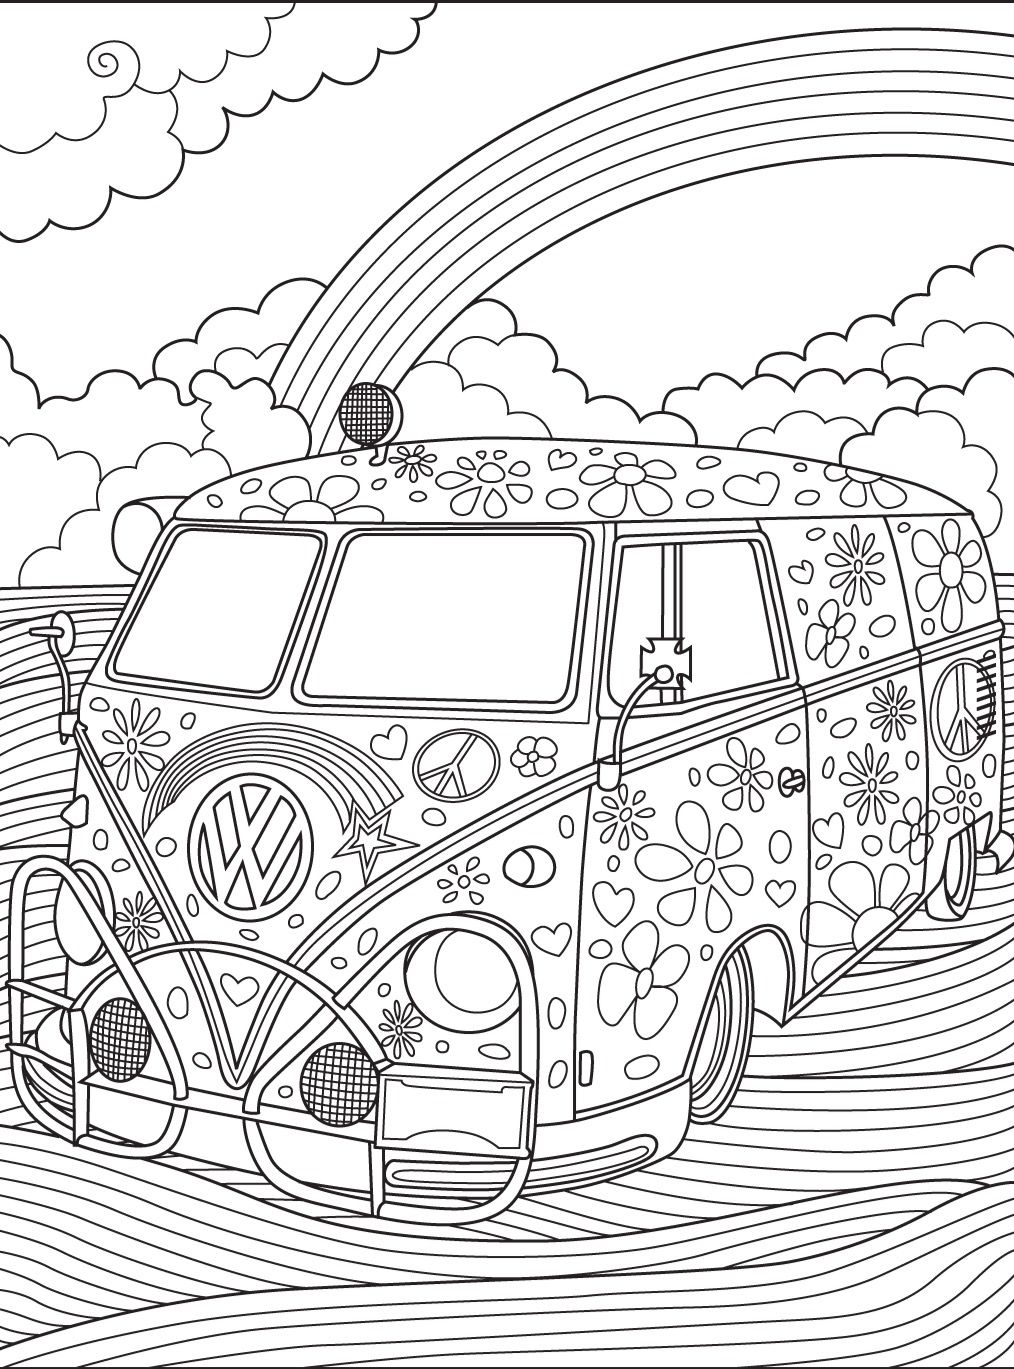 Kleurplaten Auto Vw.Vw Kombi Coloringpage Colorish Coloring Book For Adults By